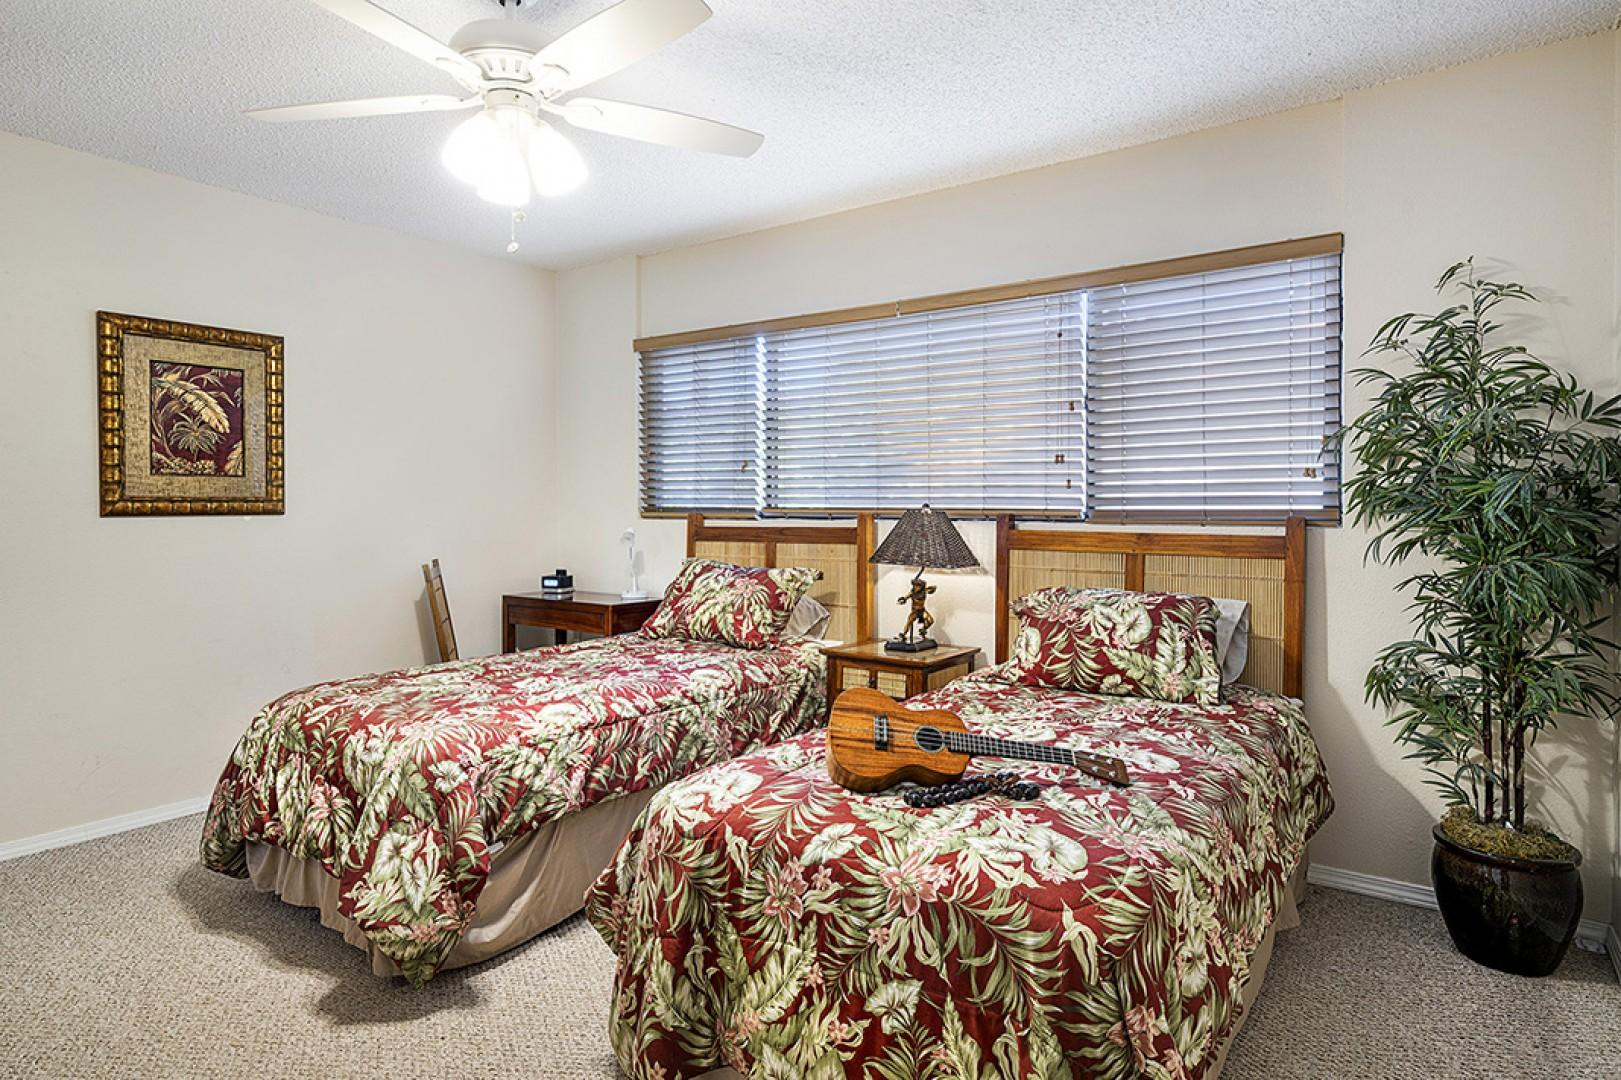 Guest bedroom equipped with 2 Twin beds